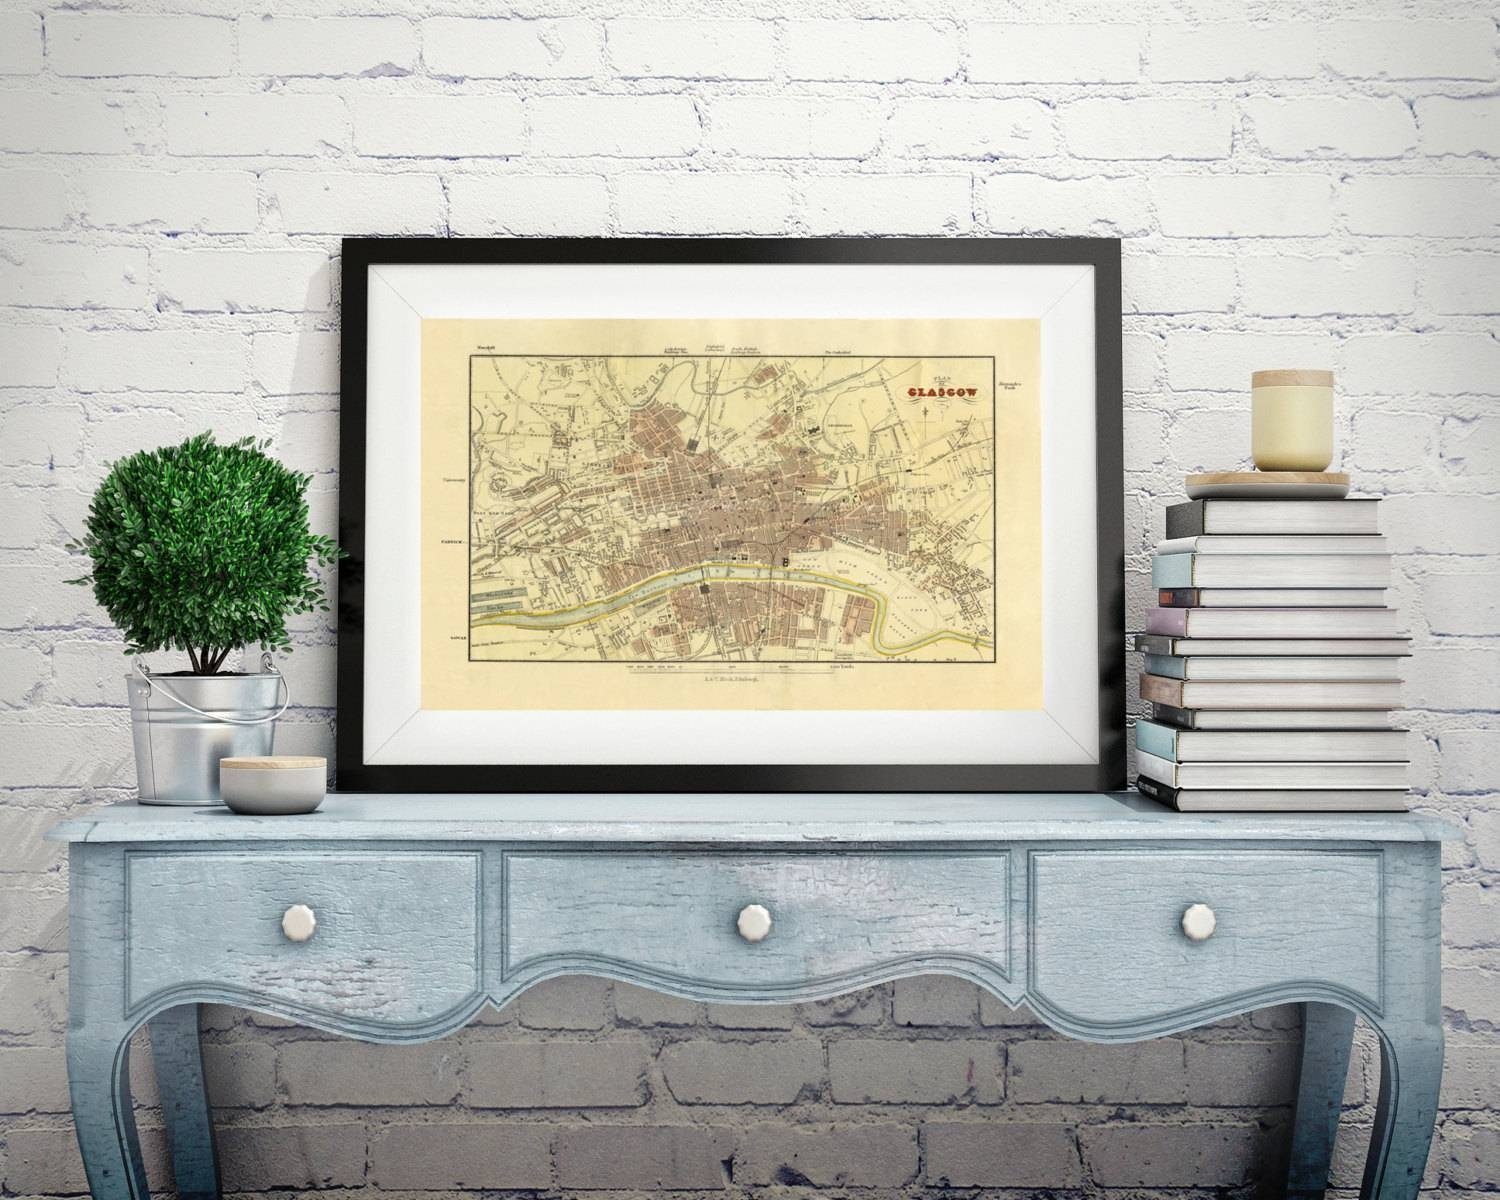 Map Of Glasgow Scotland Old Map Wall Map Scotland Antique Map Regarding Most Recent Large Map Wall Art (View 8 of 20)